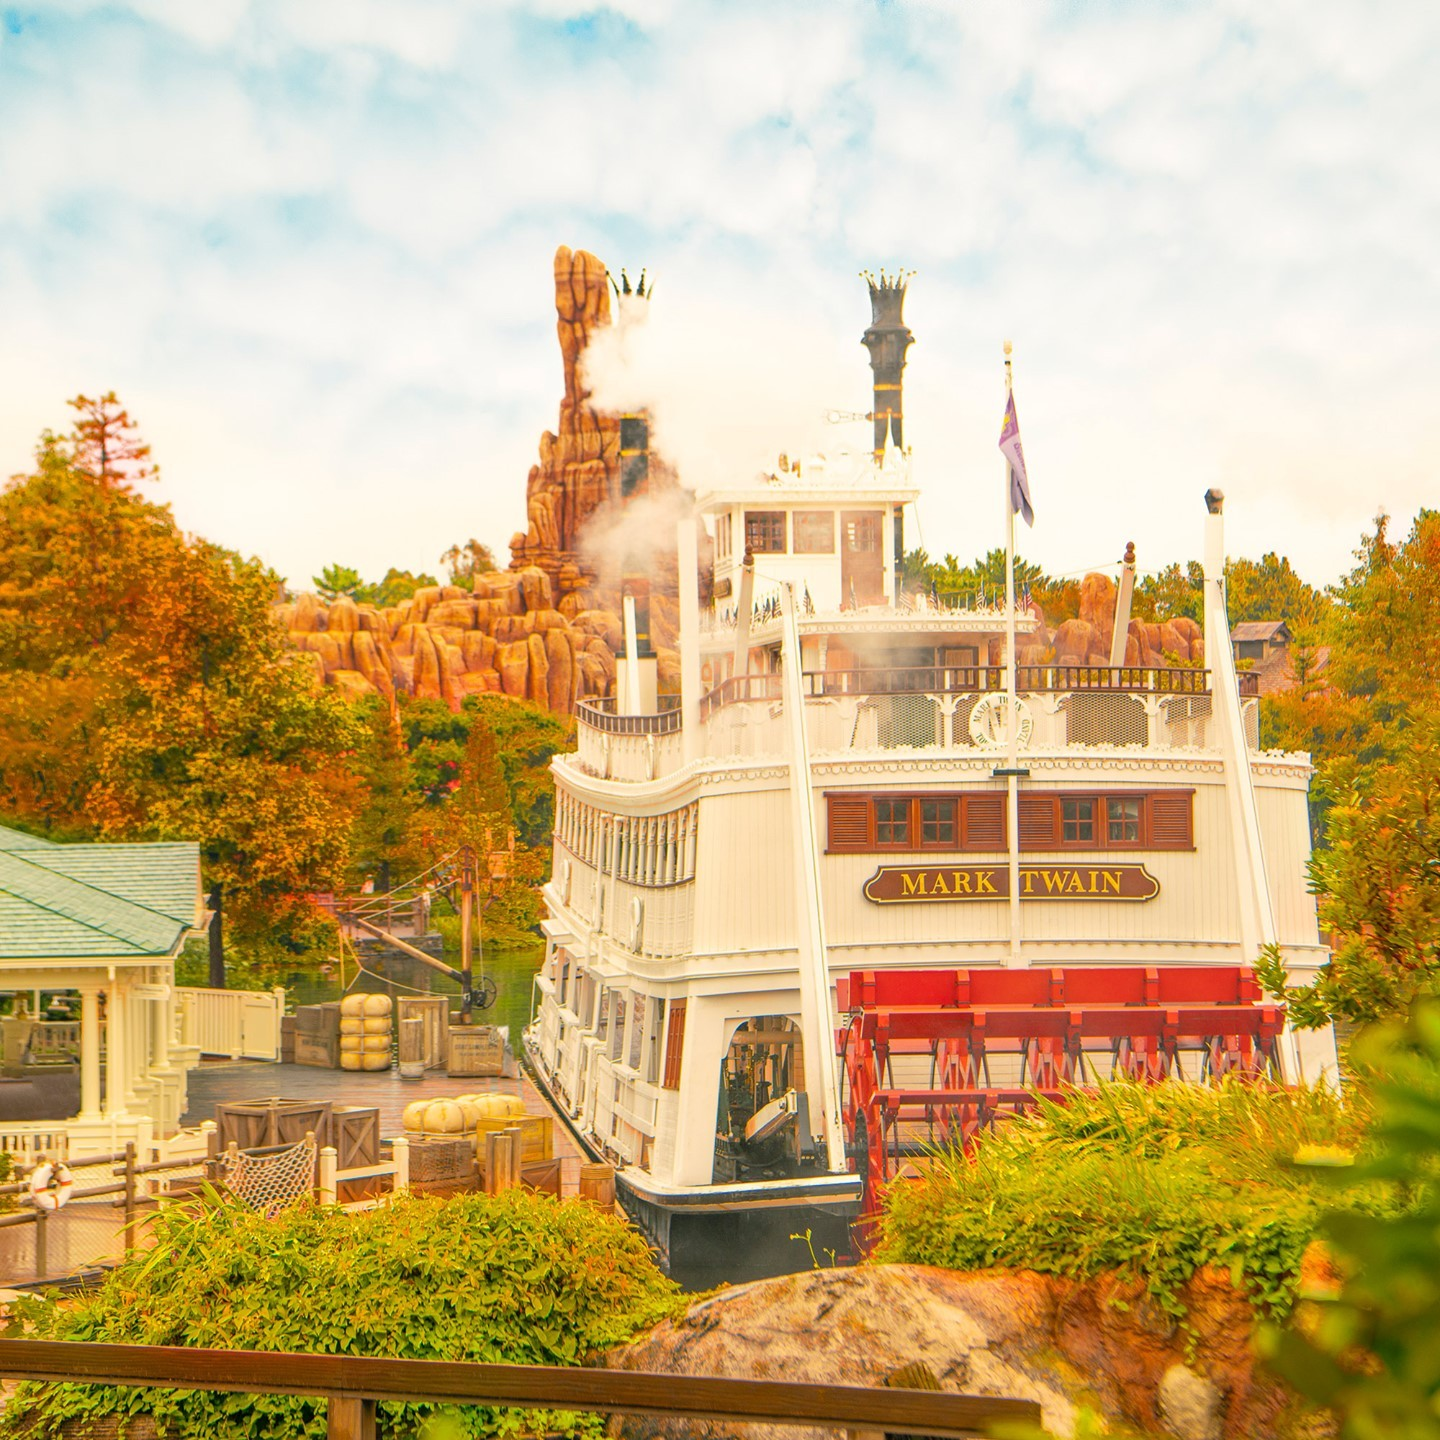 image of Depart for an autumn cruise! 秋の船旅へ出発 #autumn #autumnleaves #marktwainriverboat...